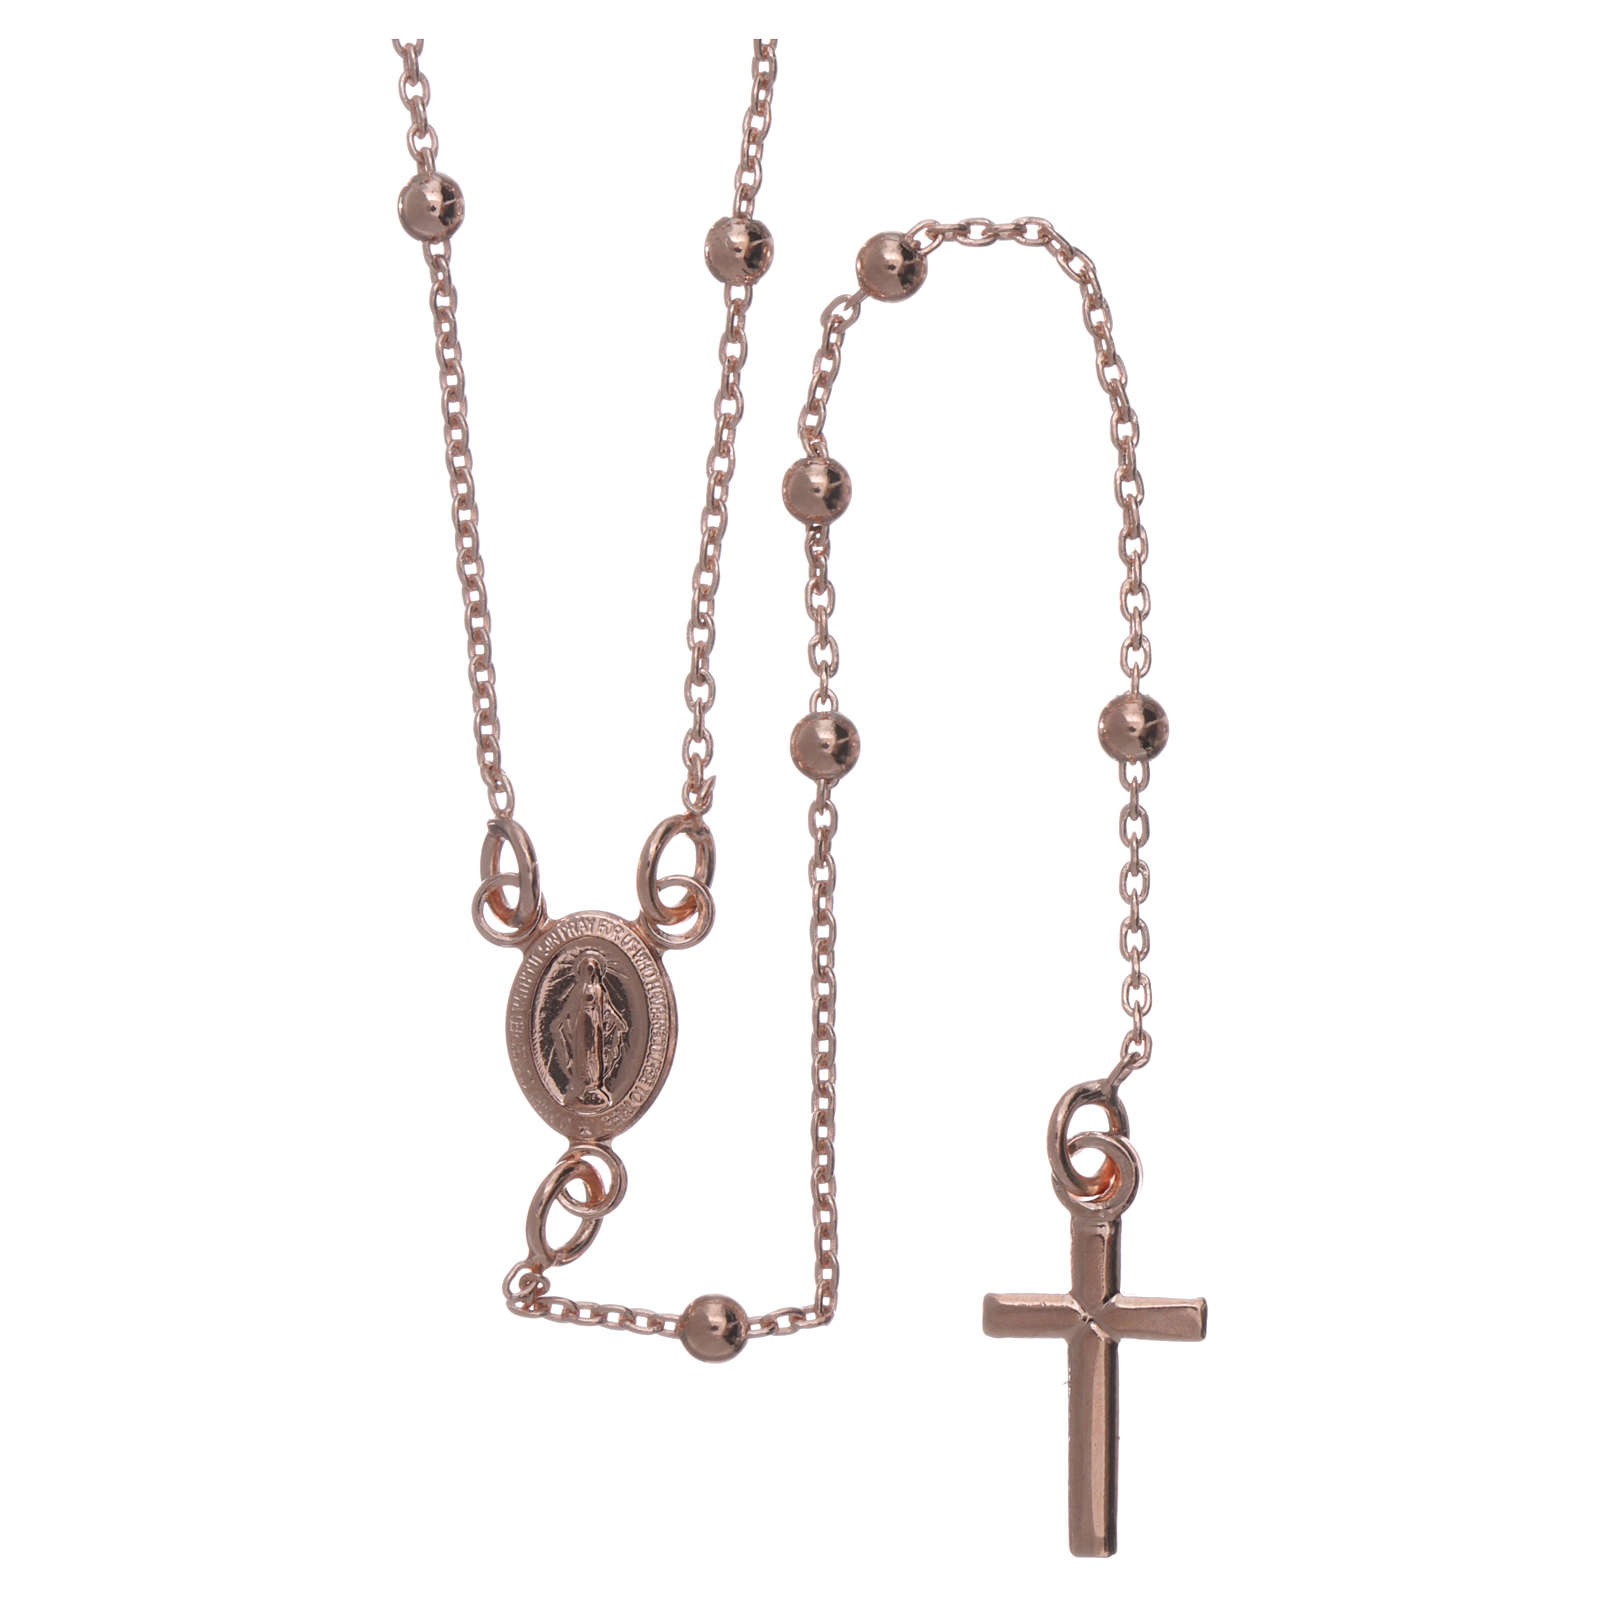 Collana rosario AMEN diam 2,5 mm bronzo Rosè 4